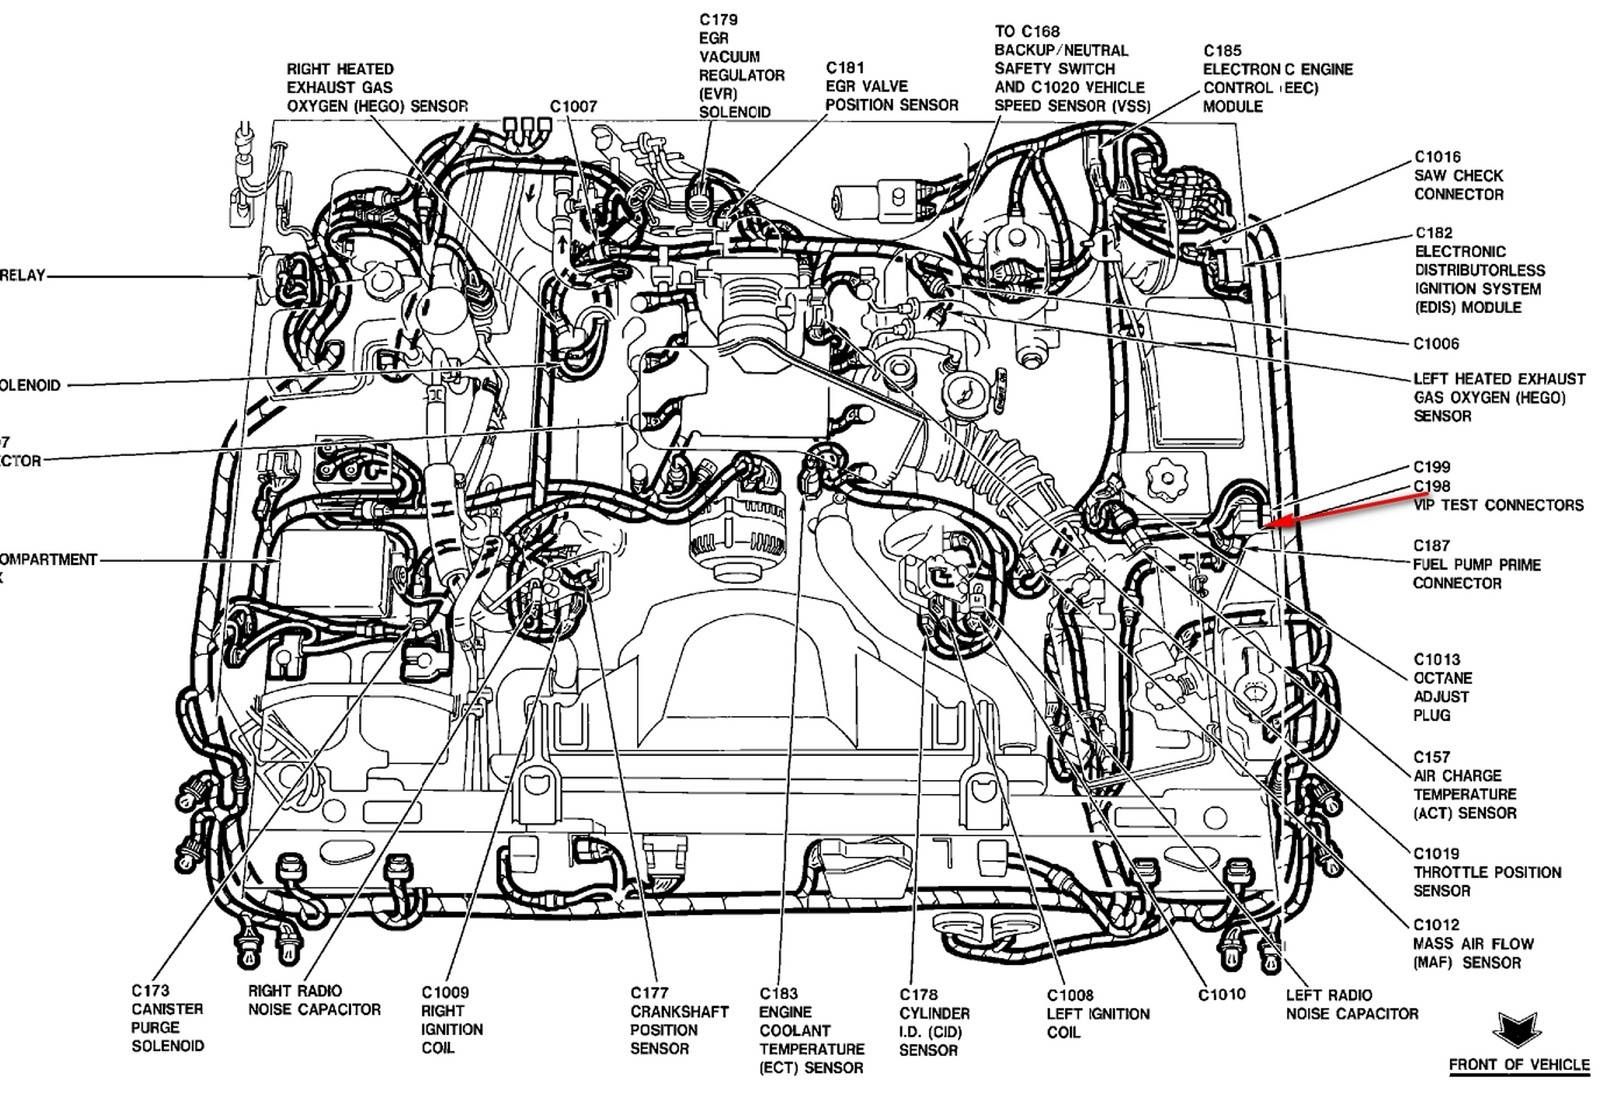 2005 Chevy Impala Engine Diagram - Wiring Diagram & Cable ... on